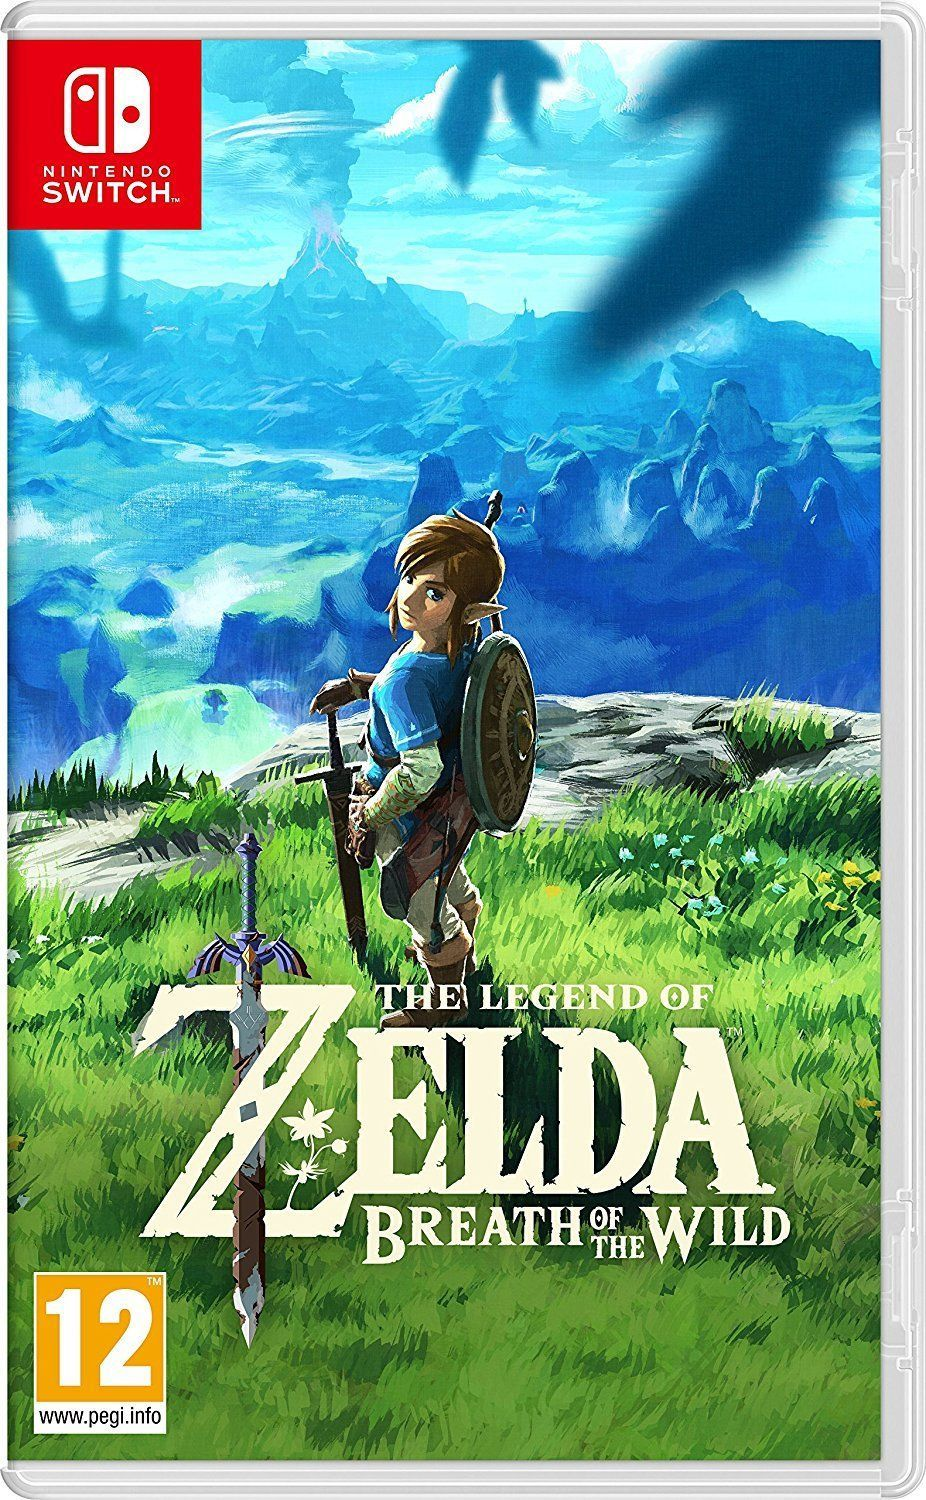 Imagen 195 de The Legend of Zelda: Breath of the Wild para Nintendo Switch